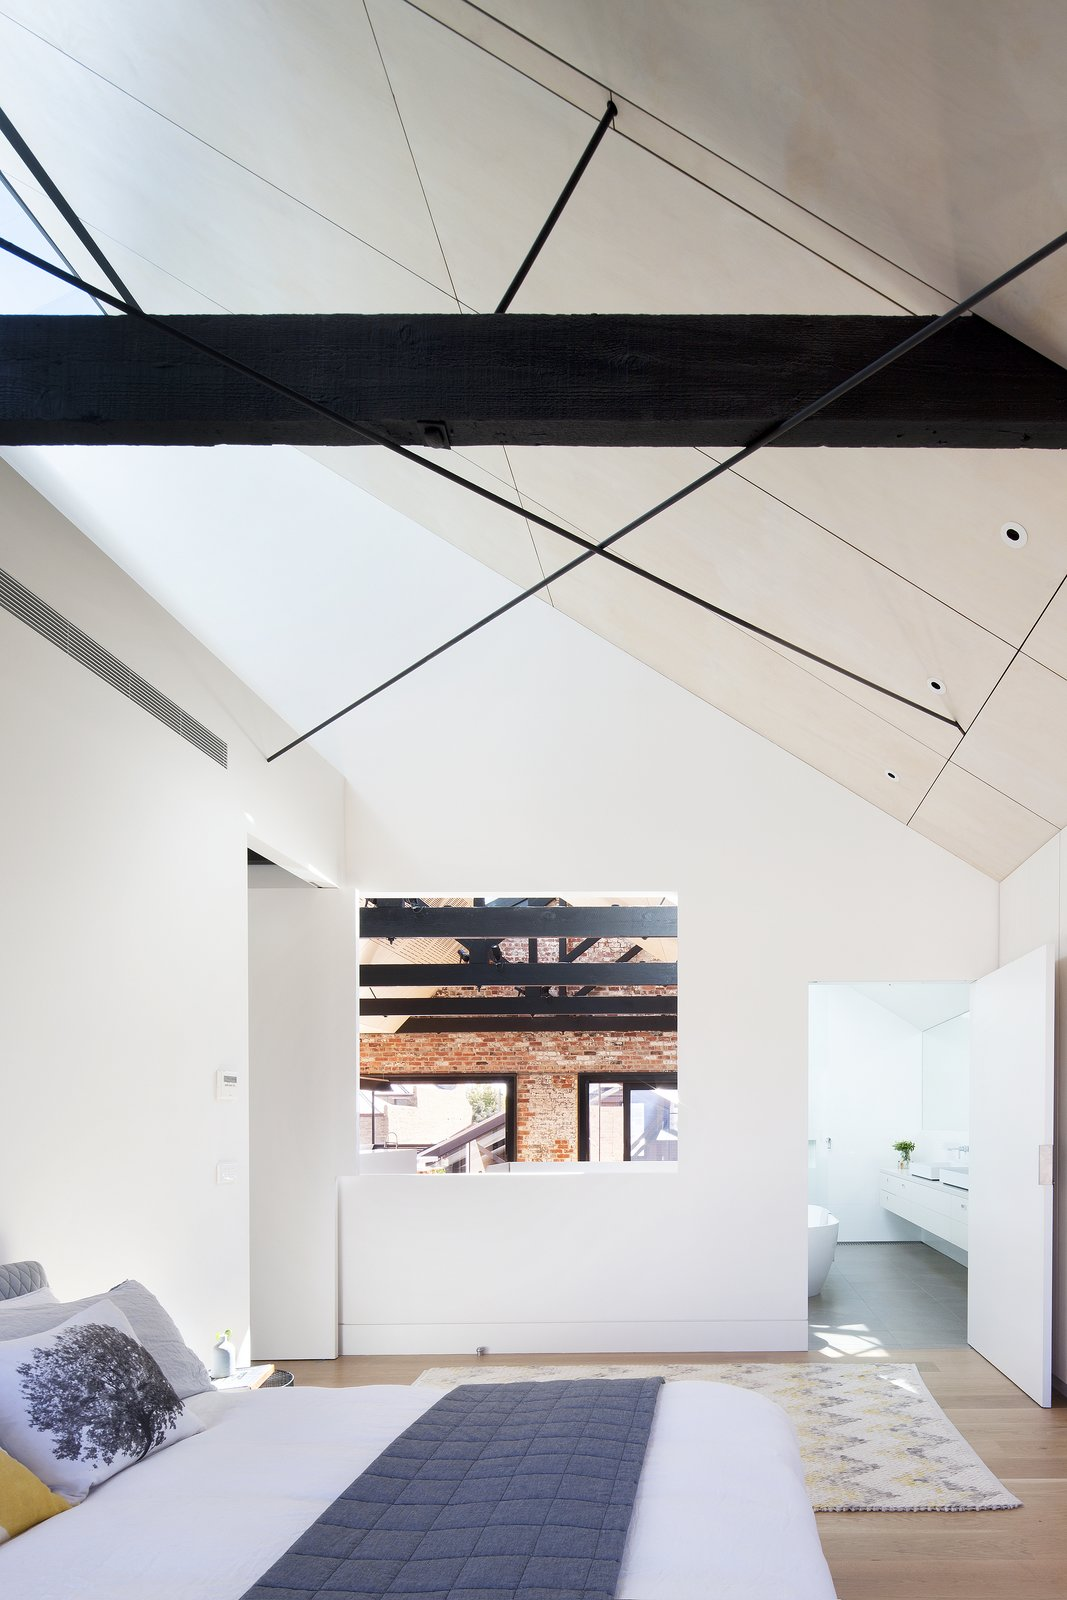 """Simpson wanted the design to capitalize on the original floor plan's abundance of space, but he also hoped to bolster intimacy by making rooms feel fluid. """"The master bedroom [opens] at its corner to become a viewing balcony to the 'central void.'""""  Bedrooms by Dwell from Water Factory"""